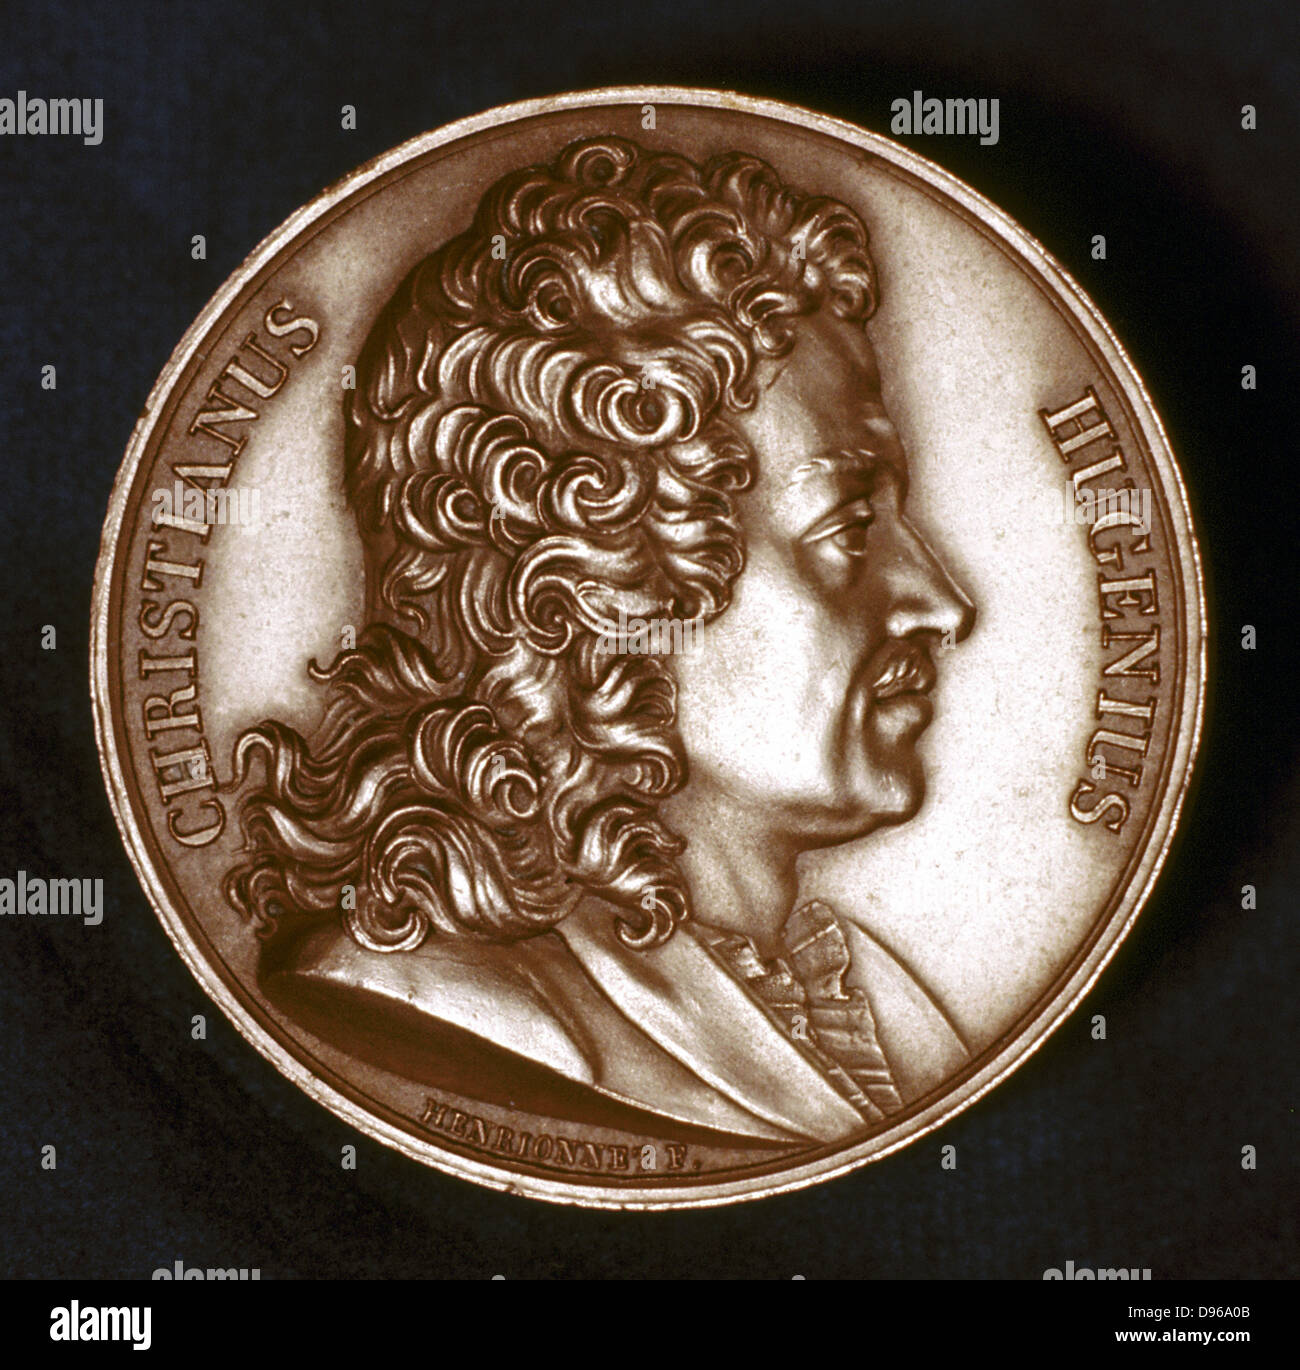 Christiaan Huyghens (1629-95) Dutch physicist. Pendulum clock: Wave theory of light. Portrait from obverse of commemorative - Stock Image